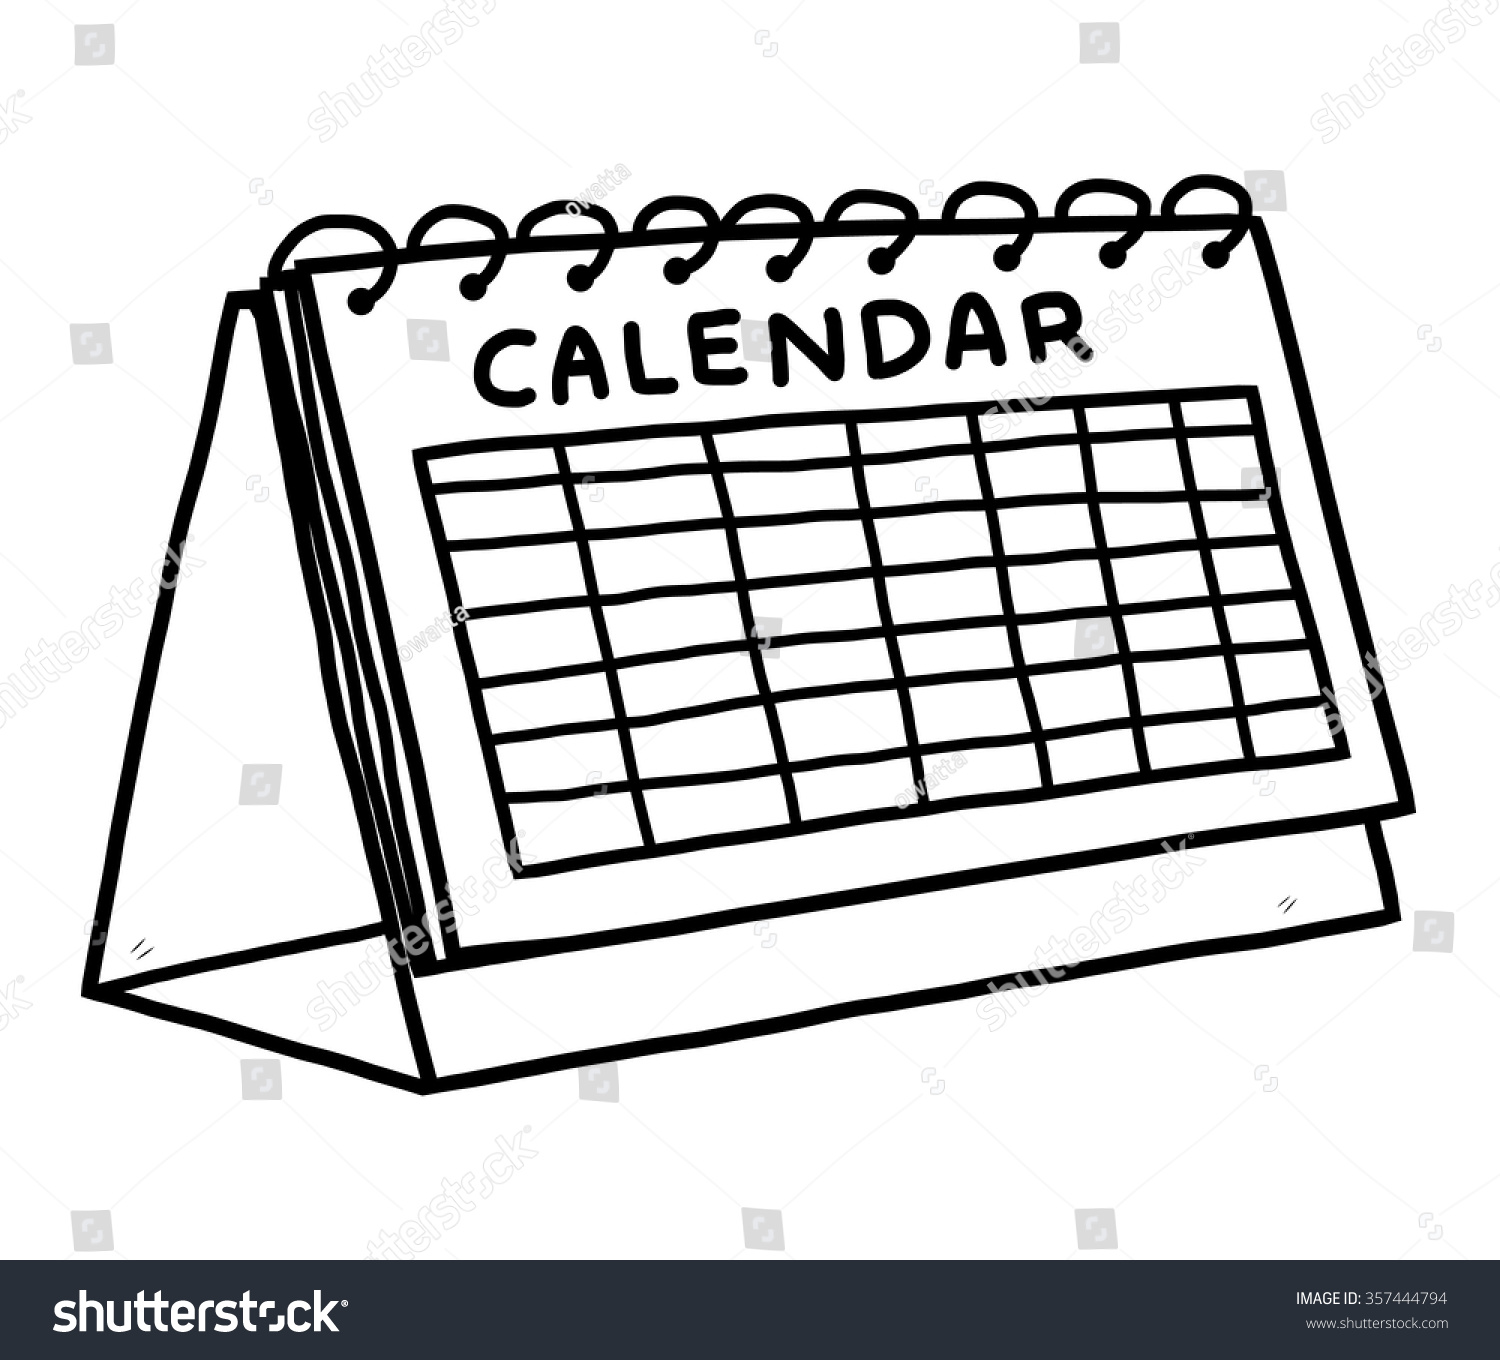 Clipart Calendar Graphic : Calendar cartoon vector illustration black white stock